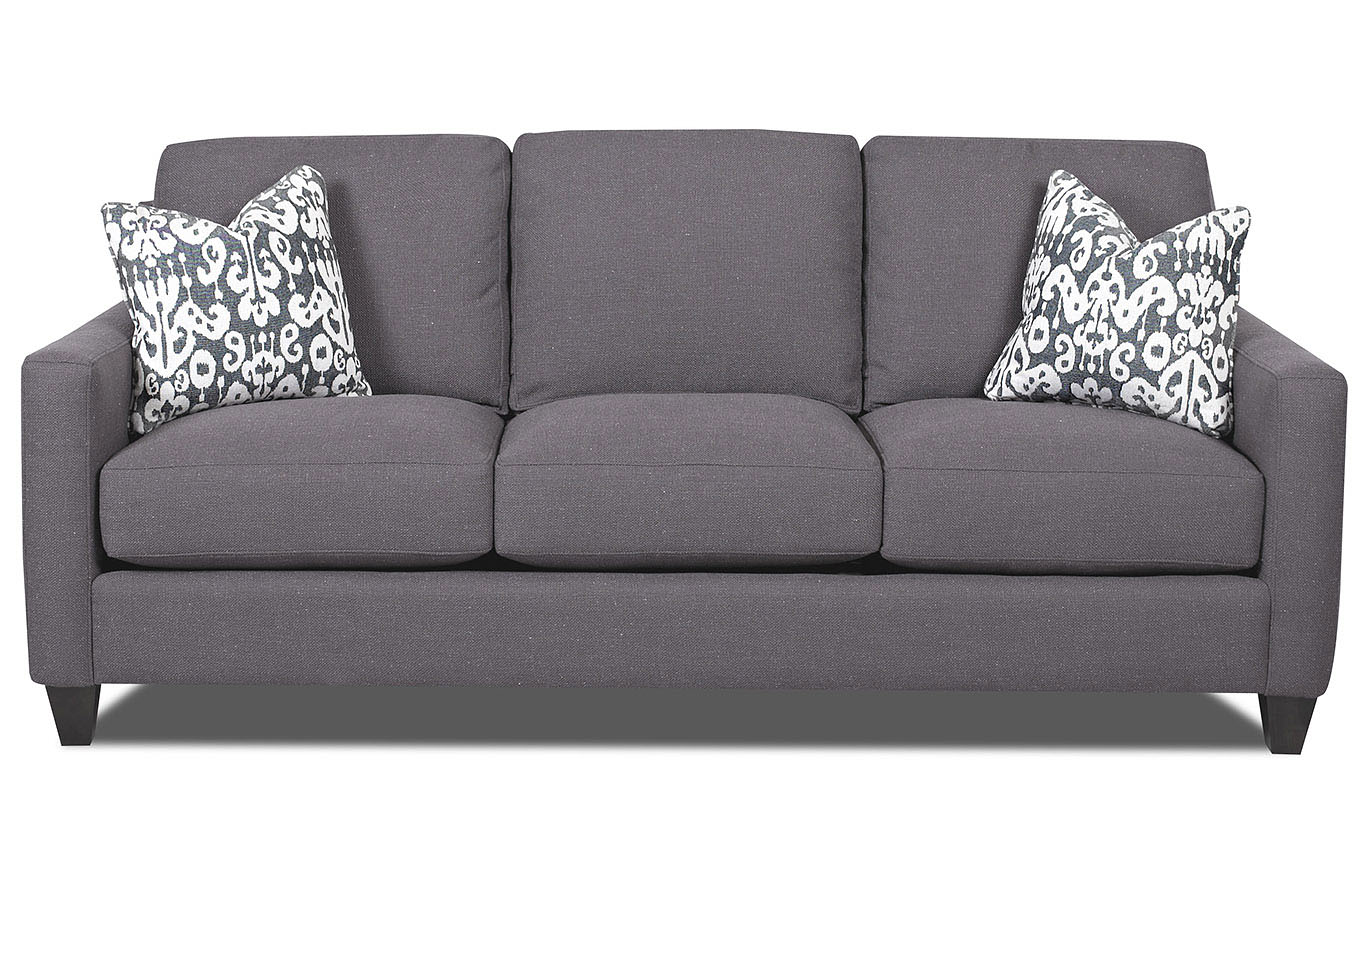 Fuller Smoke Gray Stationary Fabric Sofa,Klaussner Home Furnishings